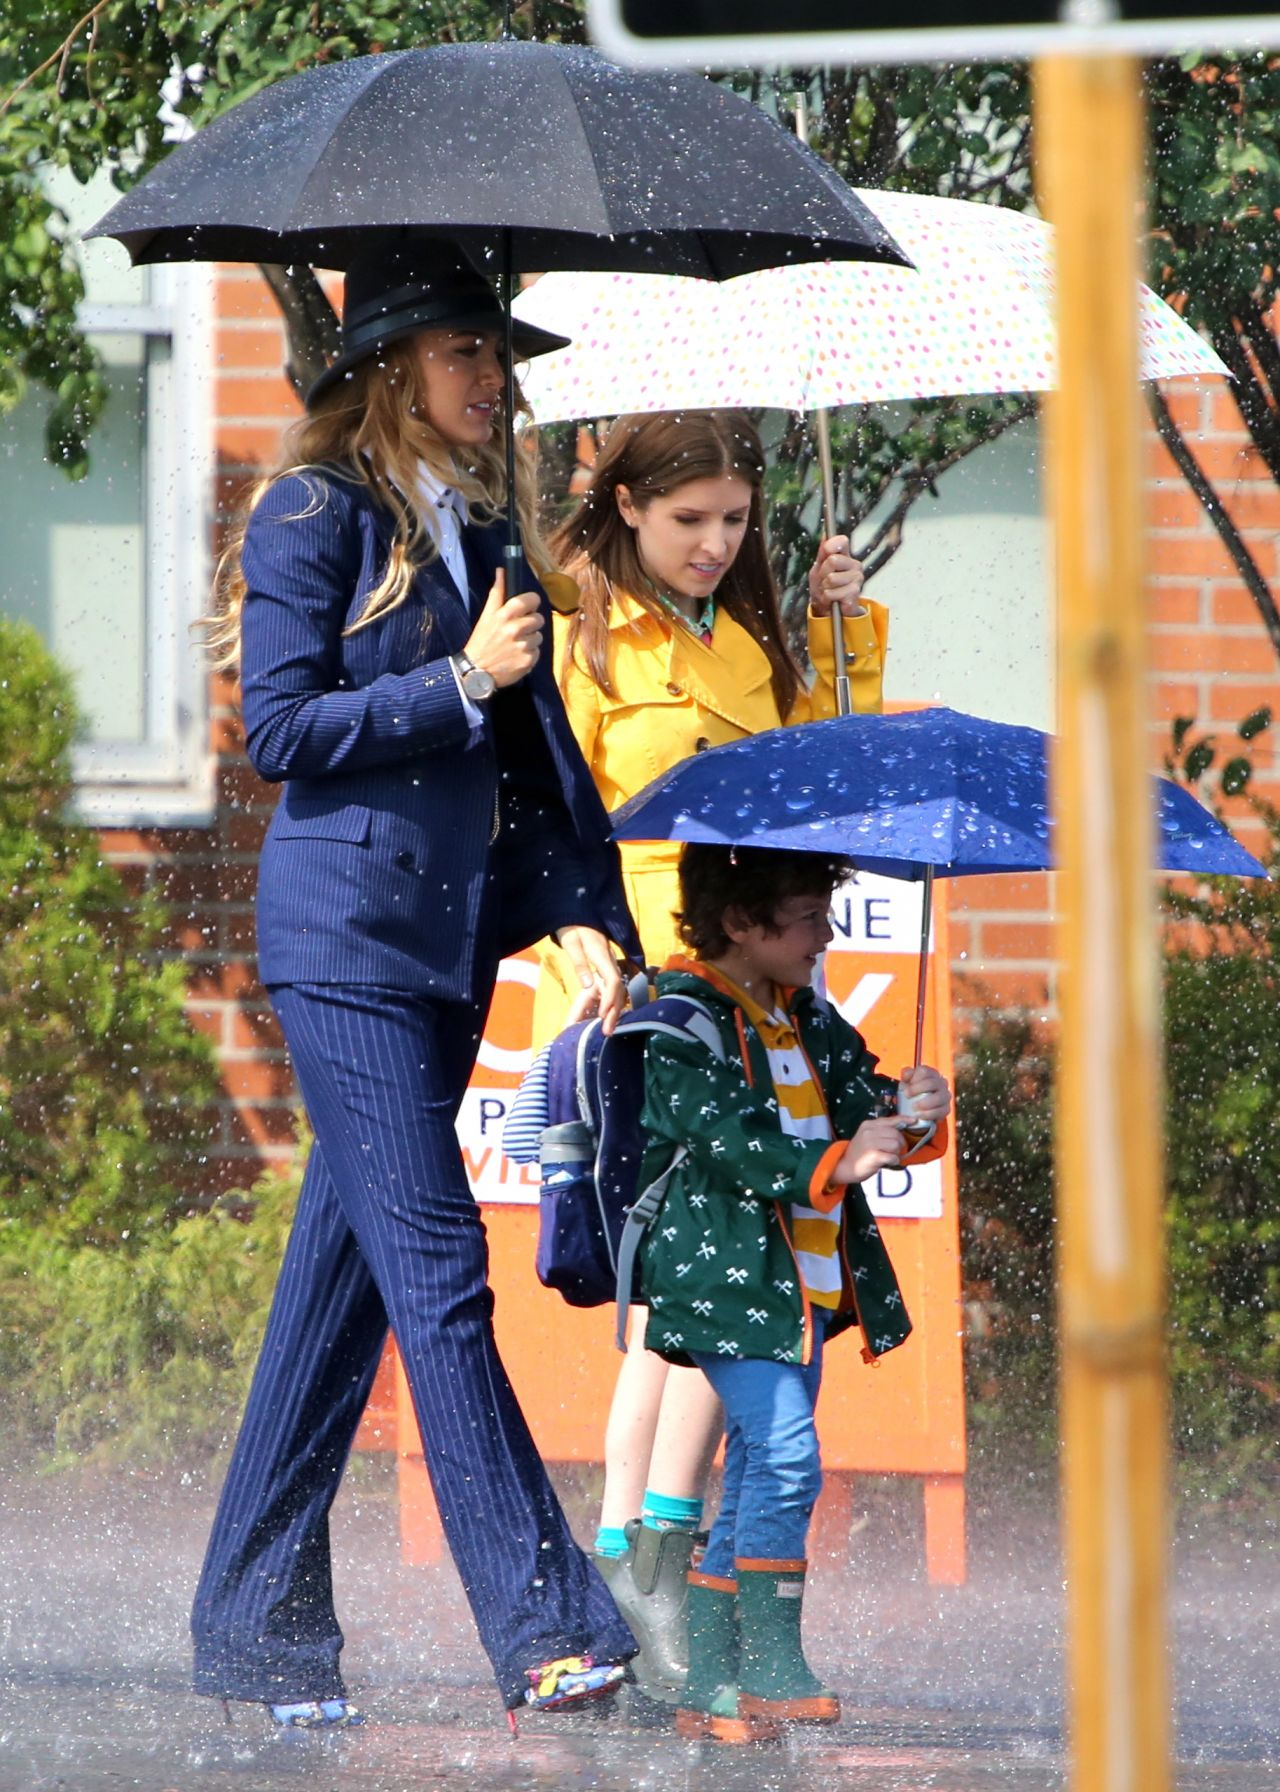 Blake Lively Anna Kendrick A Simple Favor Movie Filming In Toronto